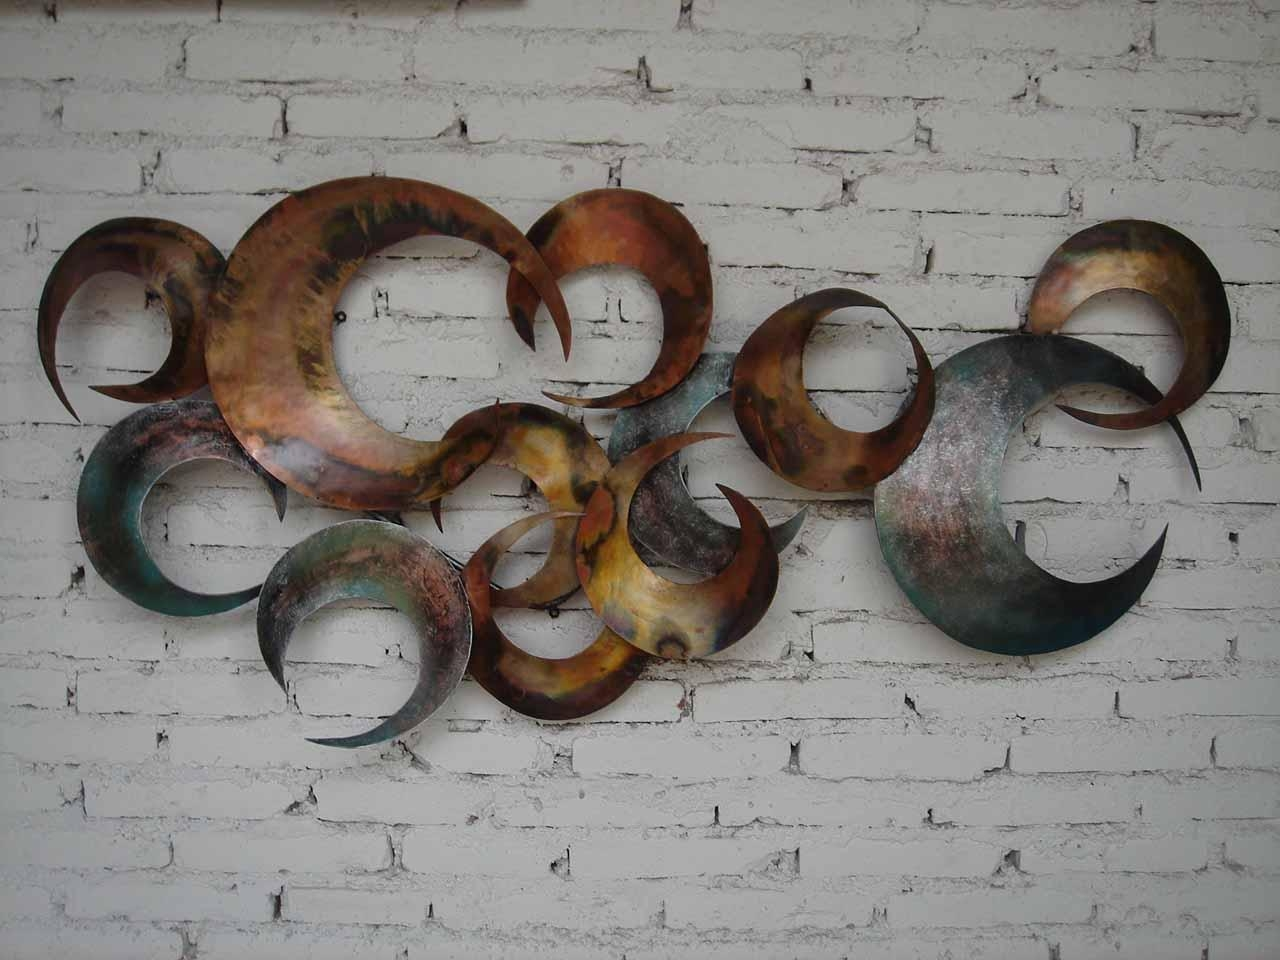 Metal Wall Art Decor And Sculptures Ideas | Jeffsbakery Basement Pertaining To Unique Modern Wall Art And Decor (View 20 of 20)